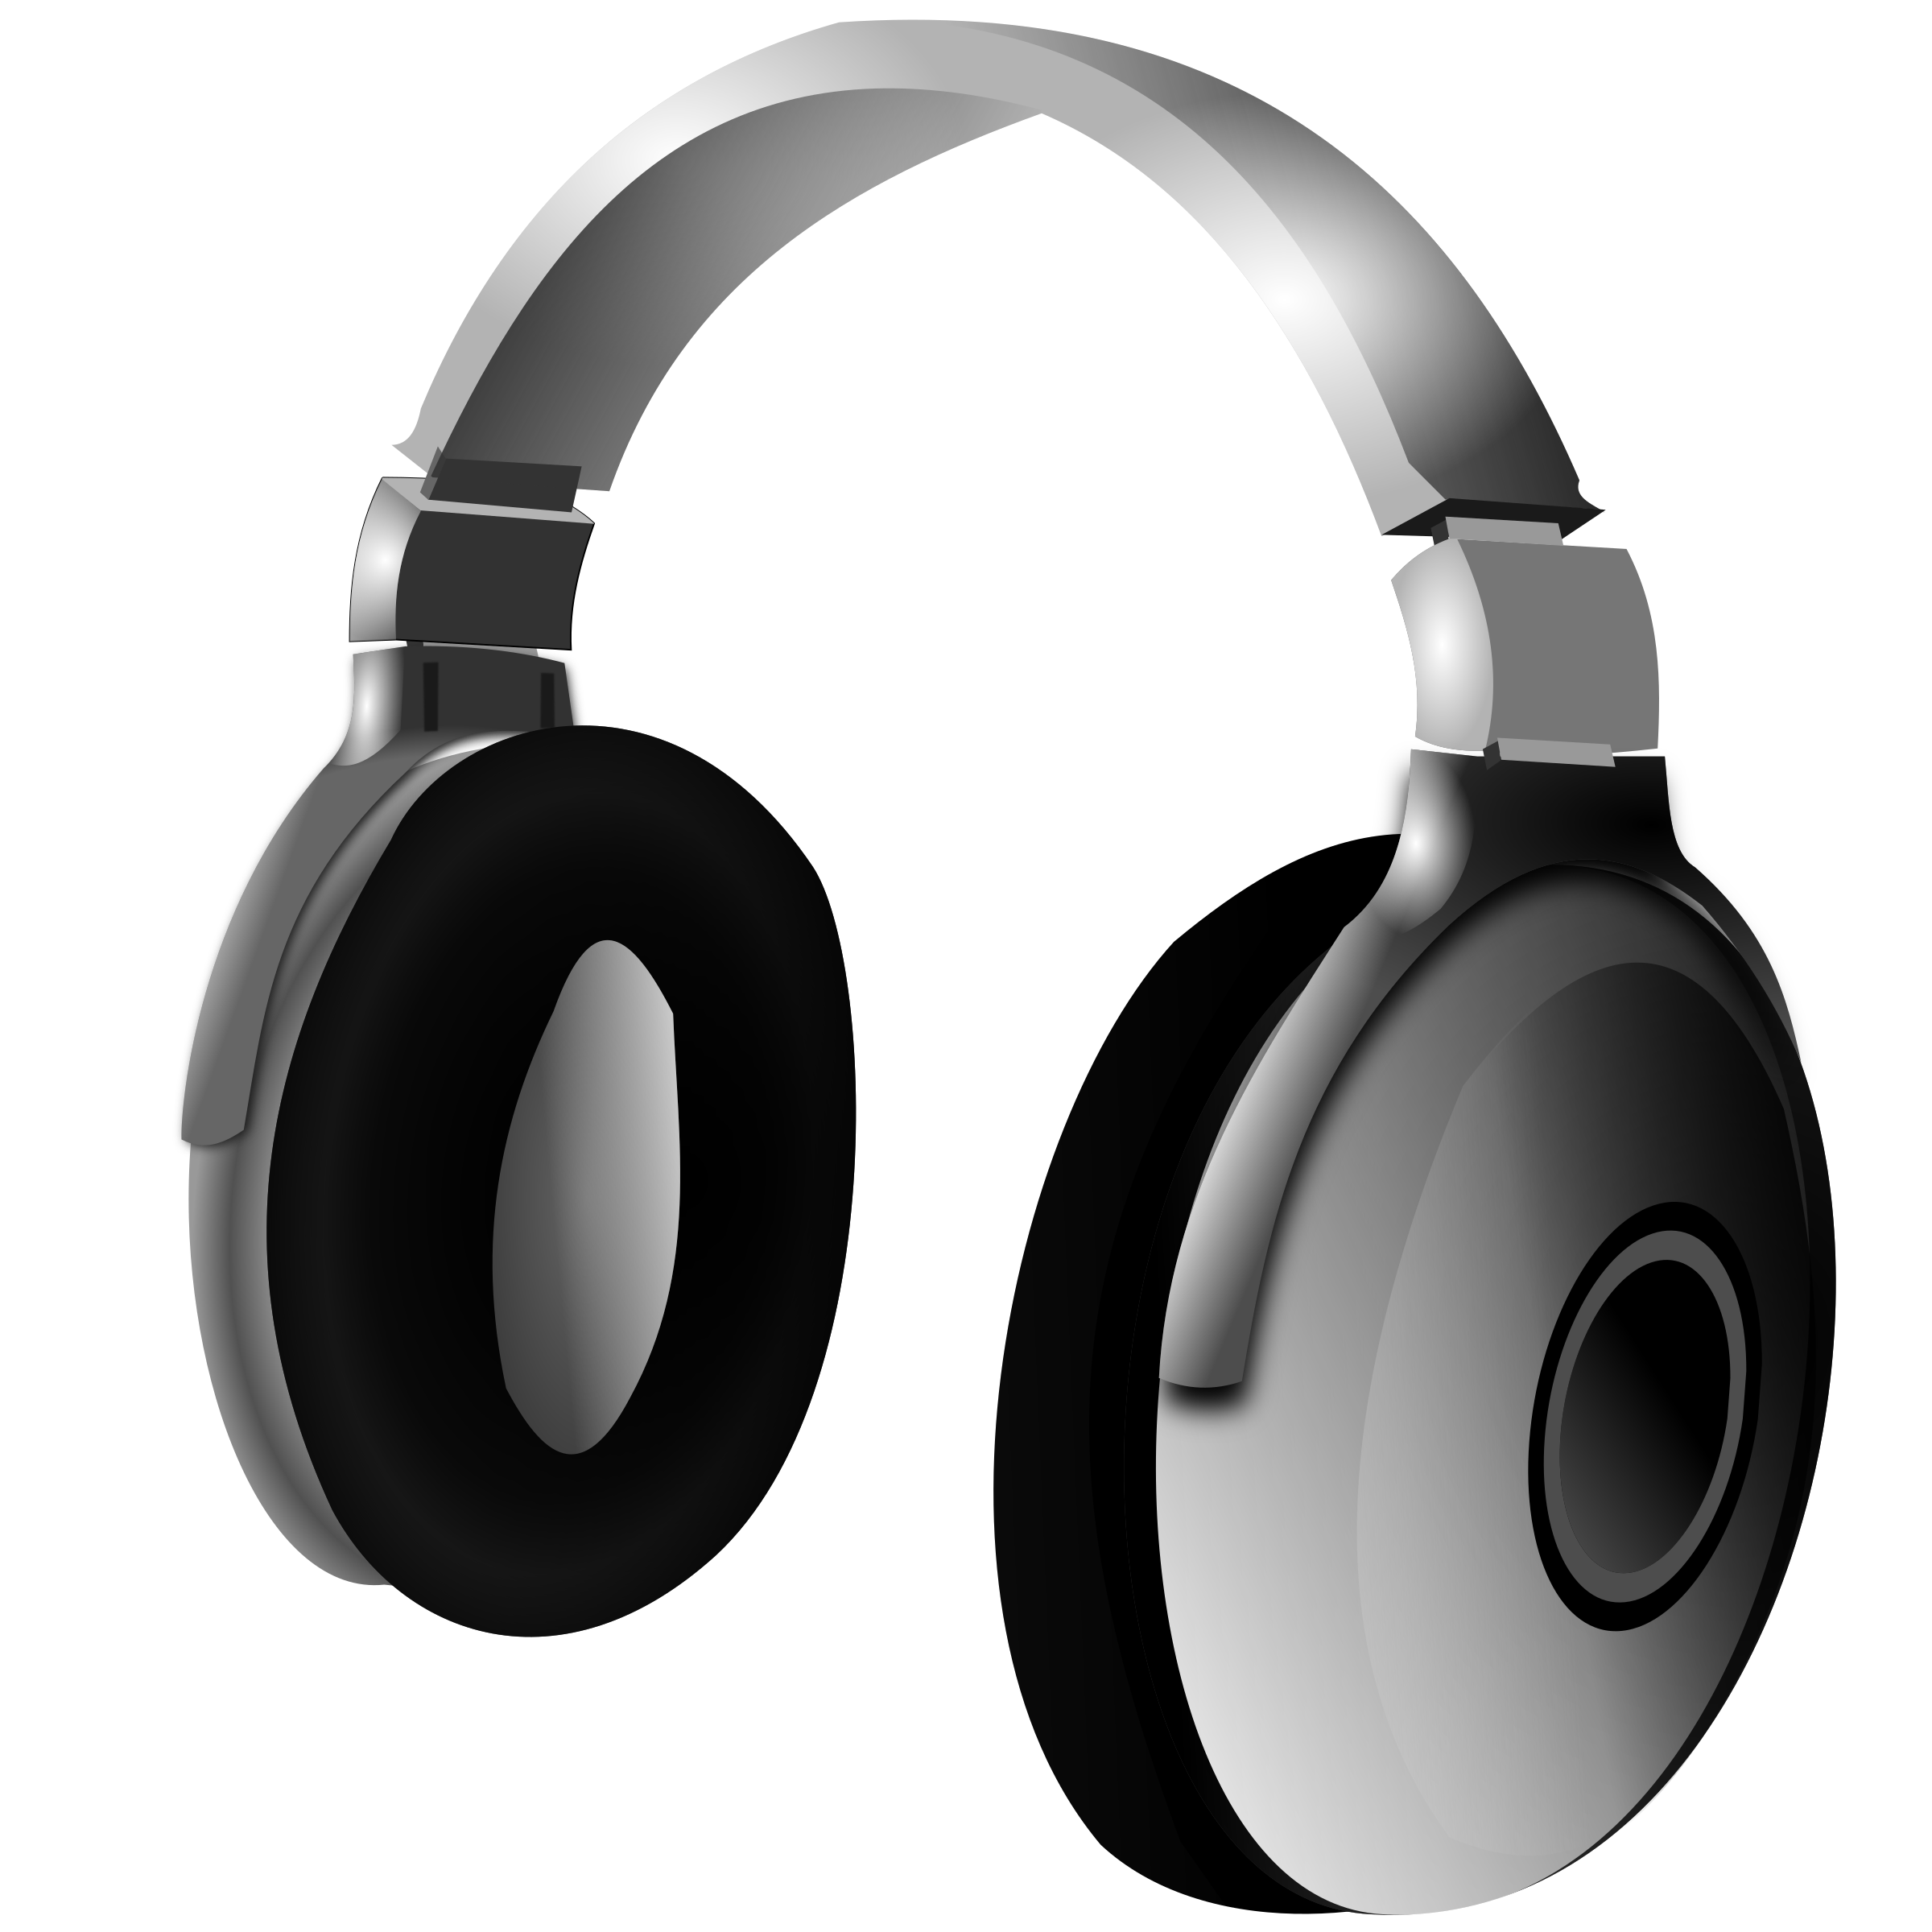 Headphone big image png. Headphones clipart head phone